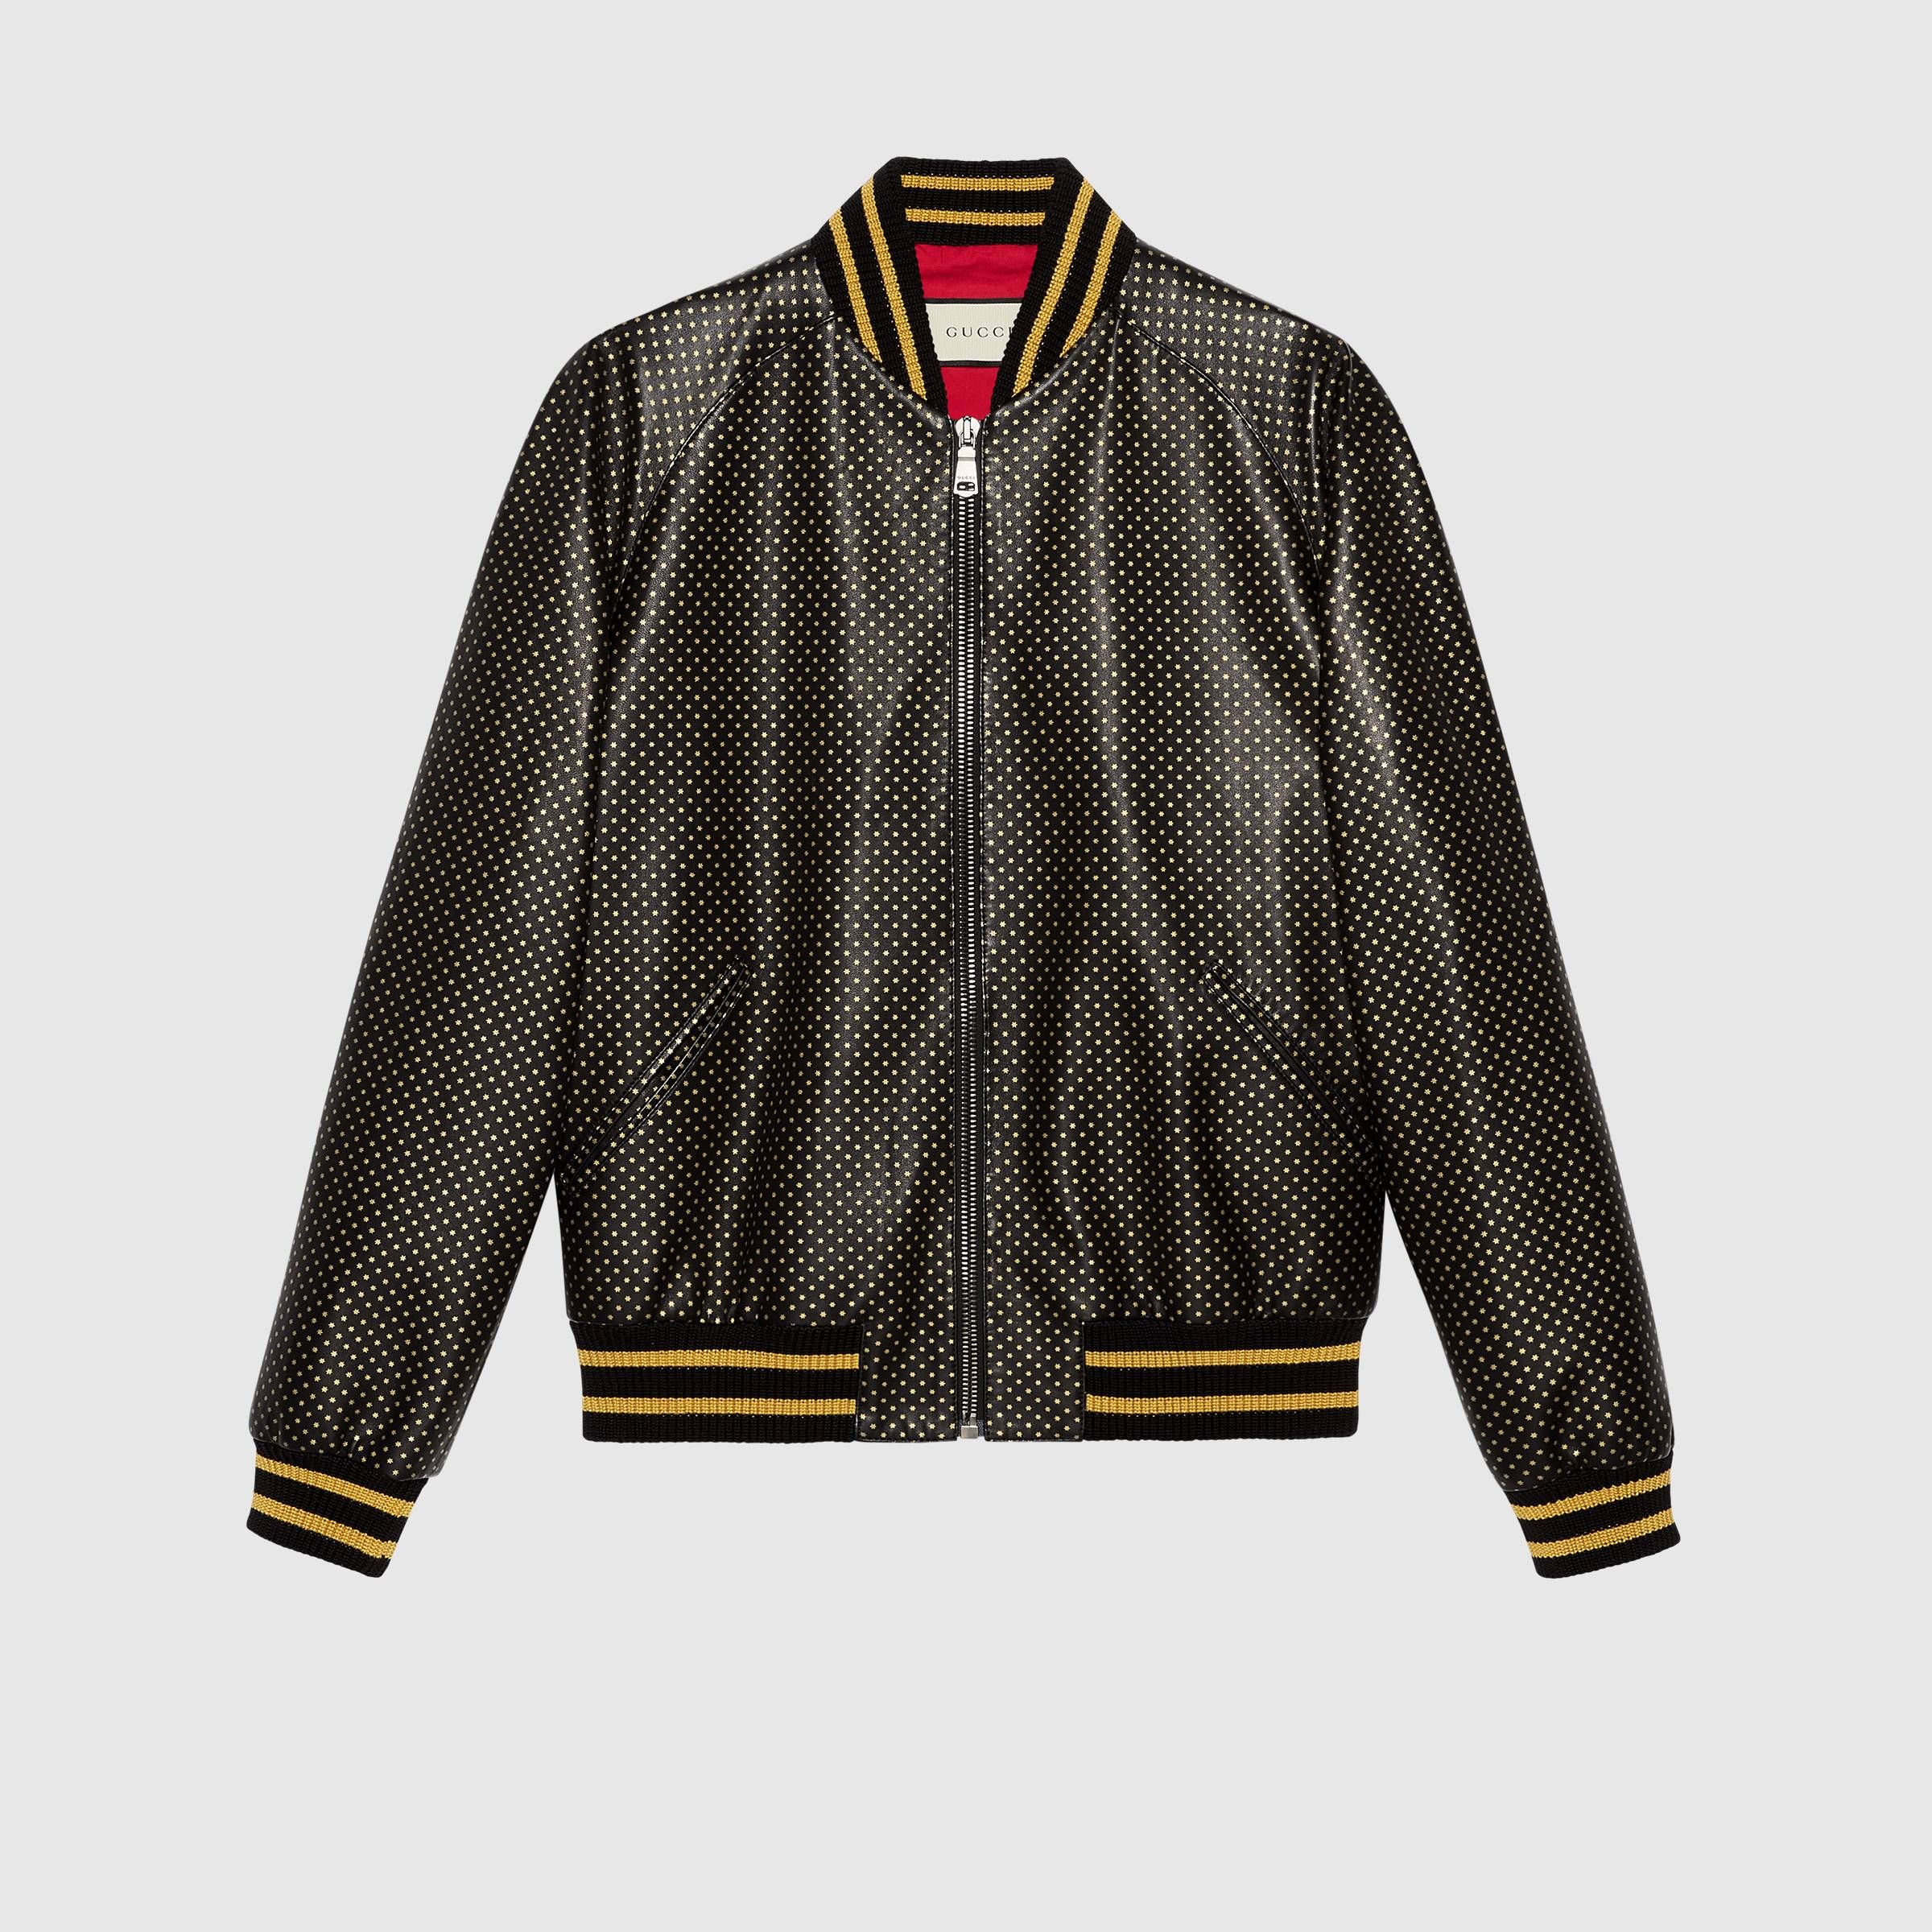 bd0b3ae0337 Guccy leather bomber jacket - Gucci Men s Leather   Casual Jackets  519556XG6411815